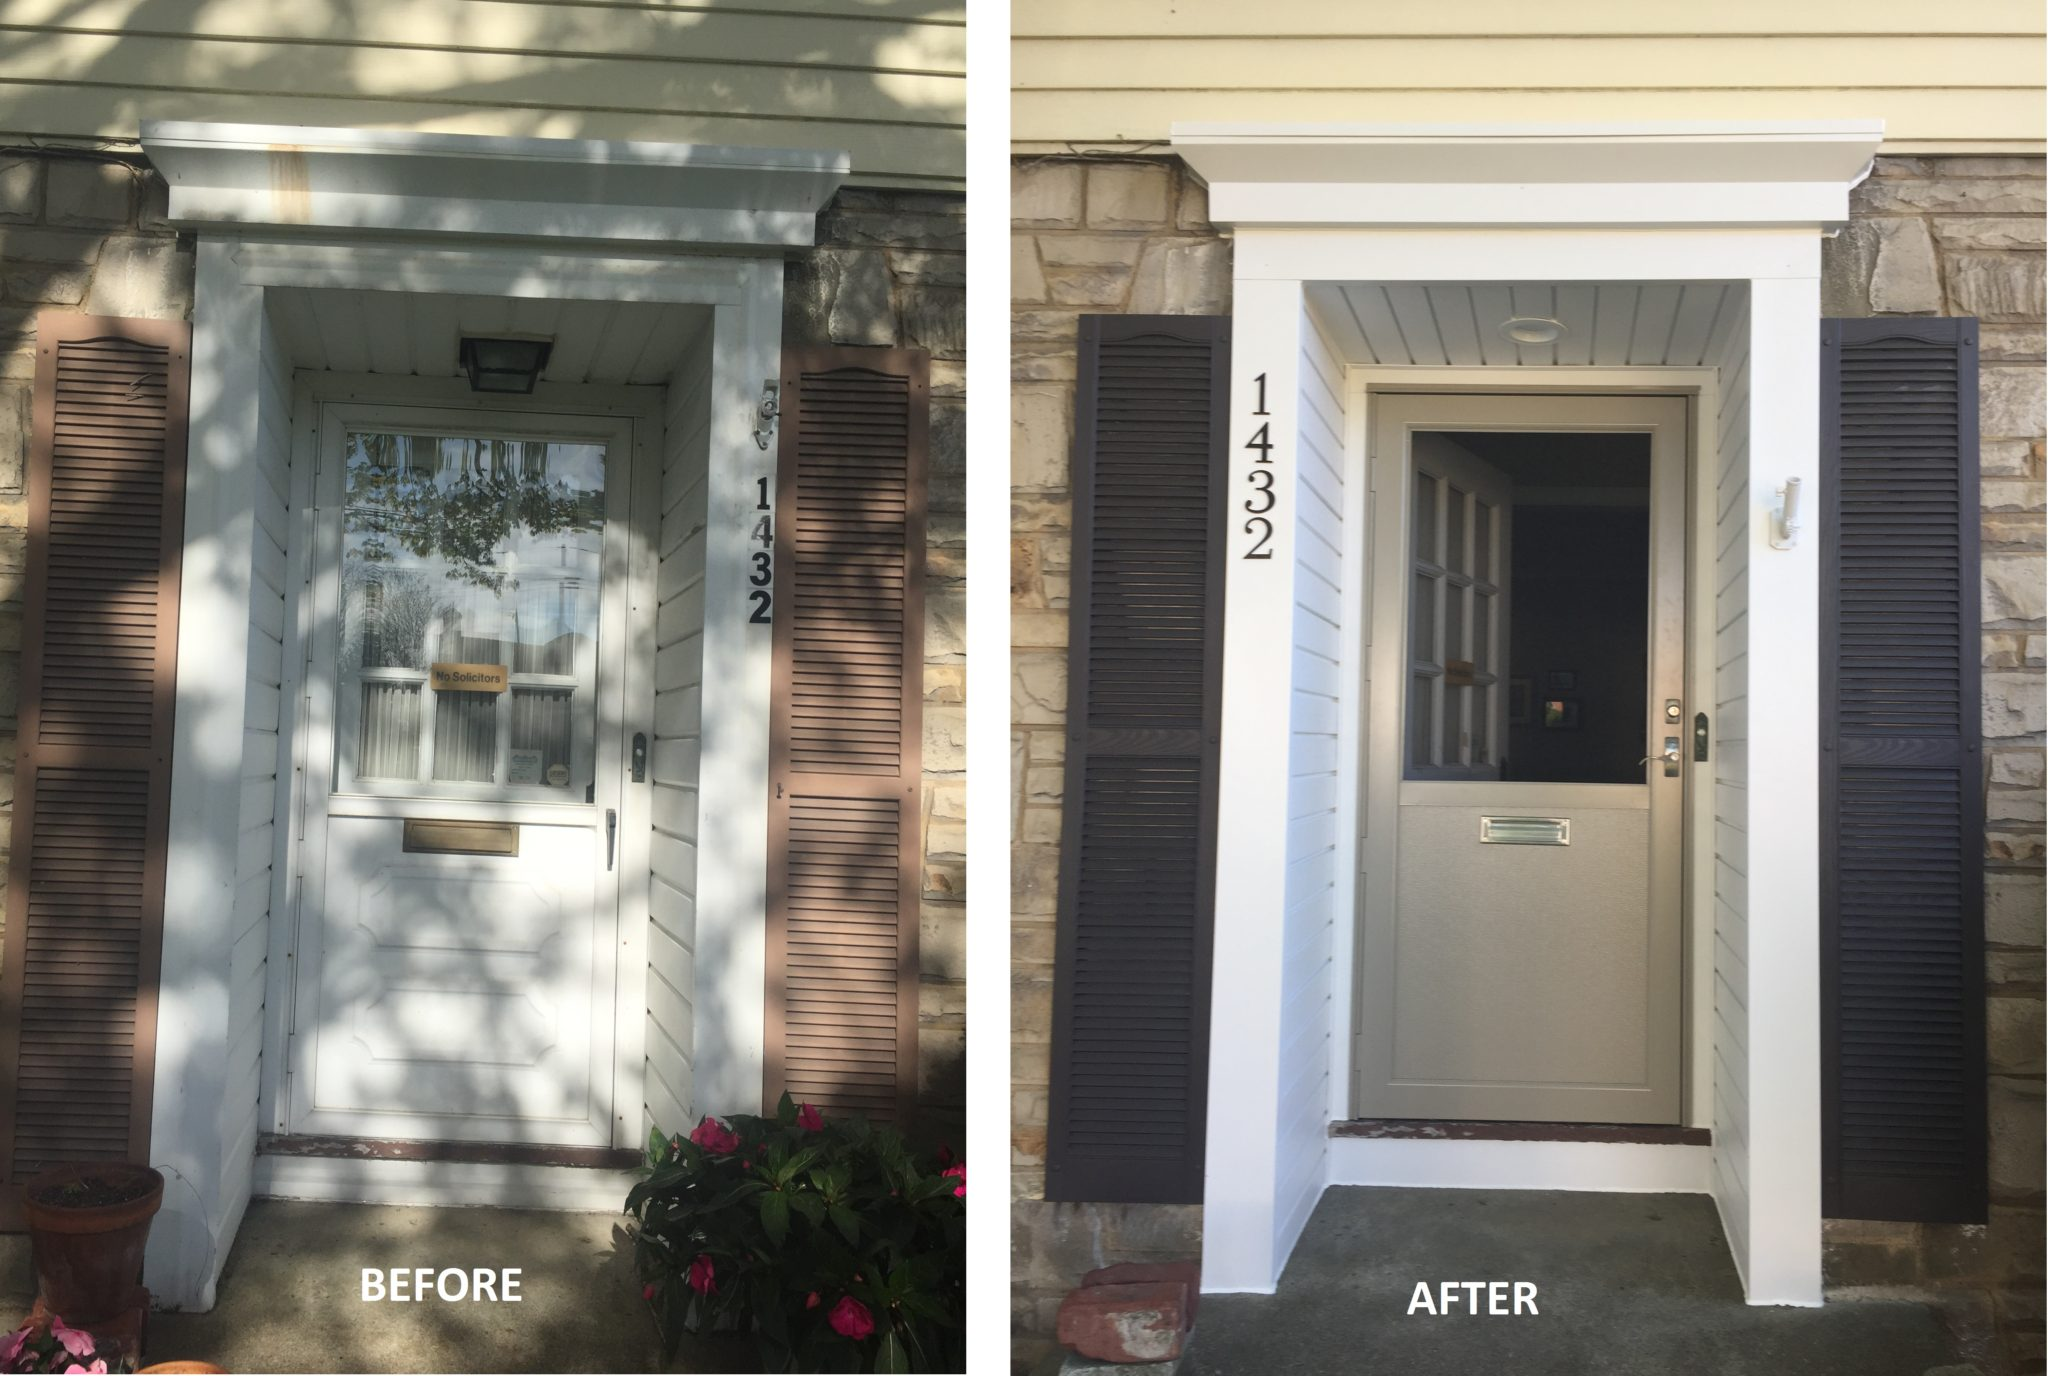 New Storm Door with Resided Entryway Adds to Curb Appeal in Lakewood